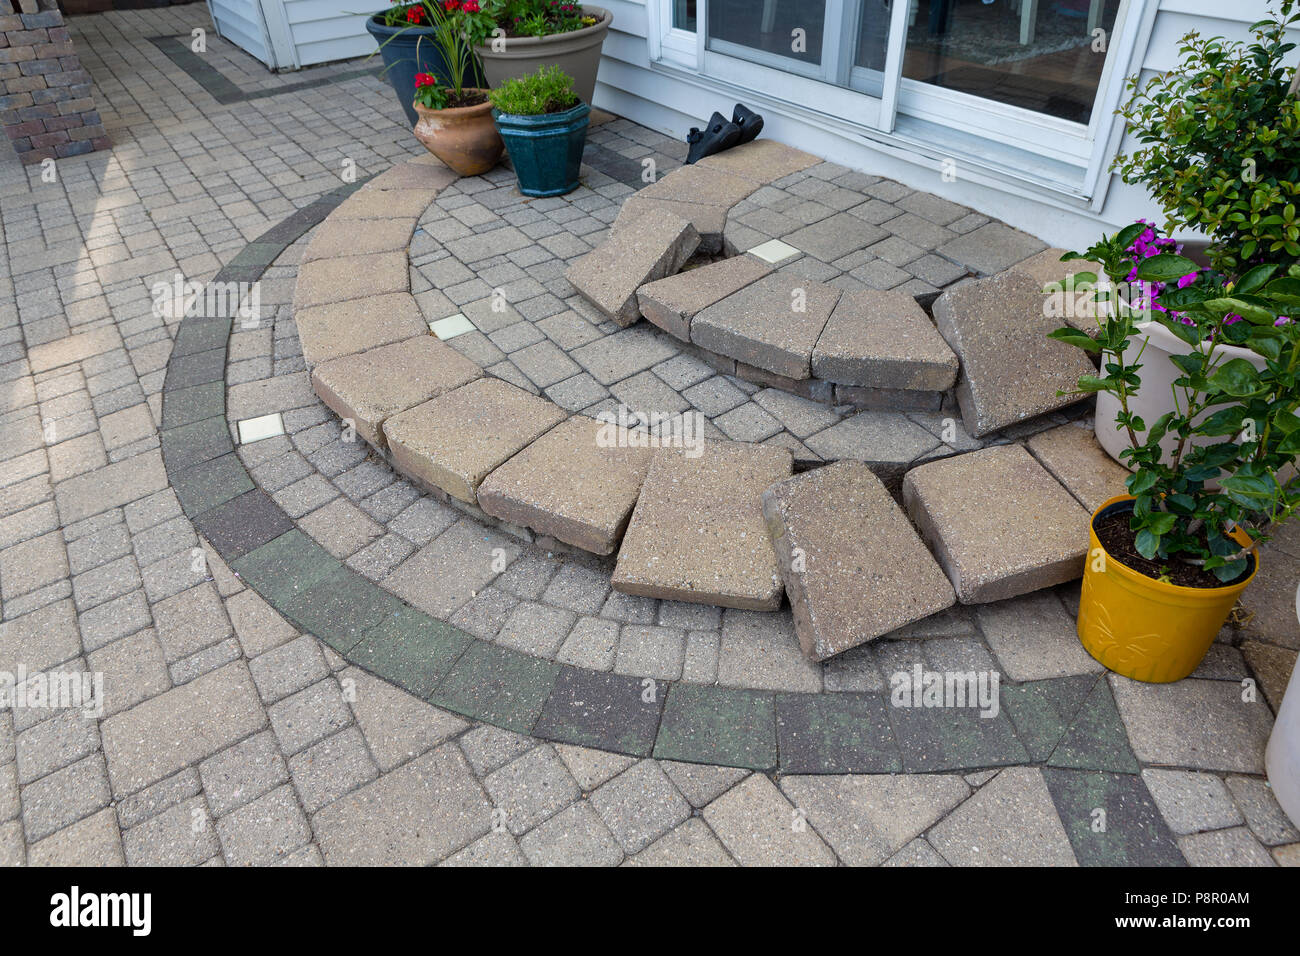 Replacing Paving Edging Bricks On Curved Patio Steps In Front Of